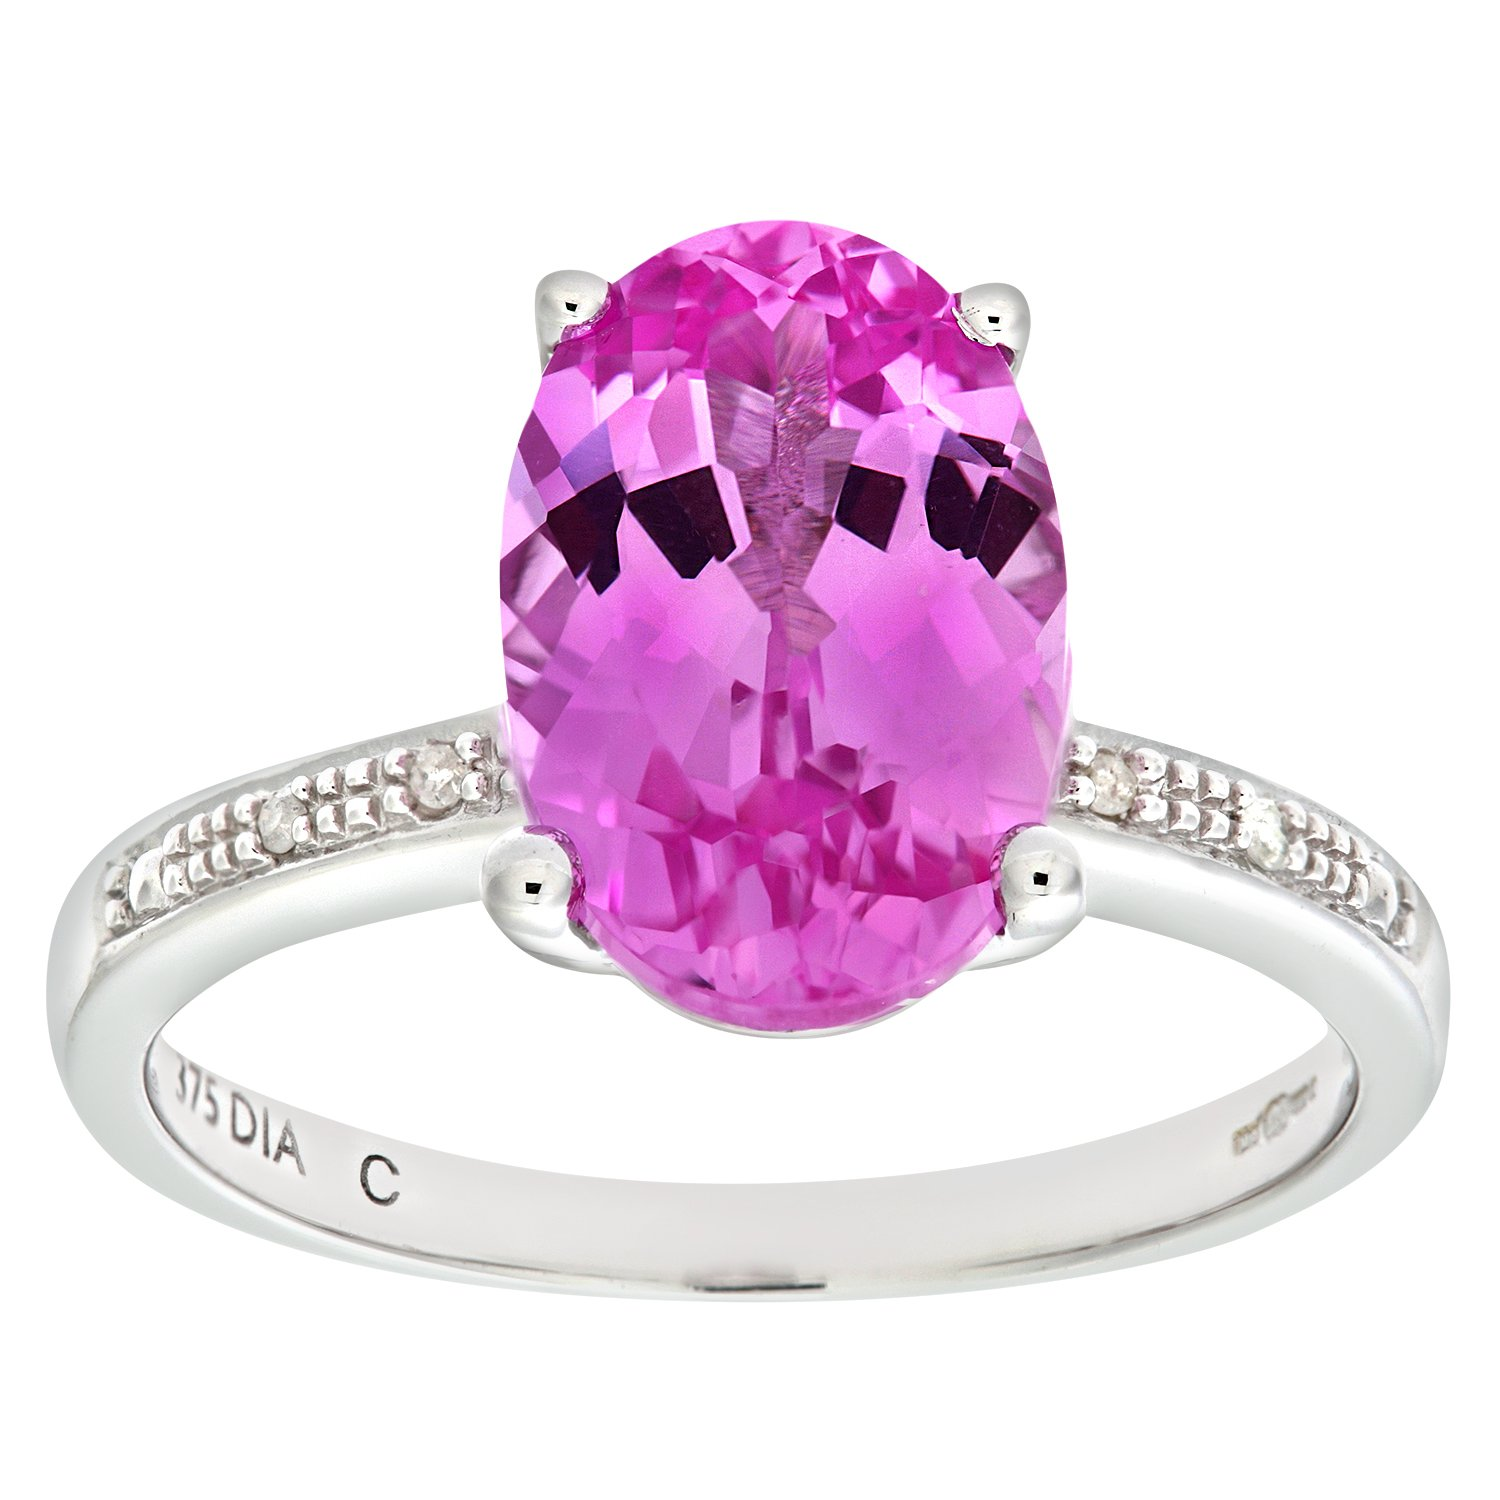 stack sapphire makers en pink ring njamsterdam bali rings nj fancy with silver jewelry